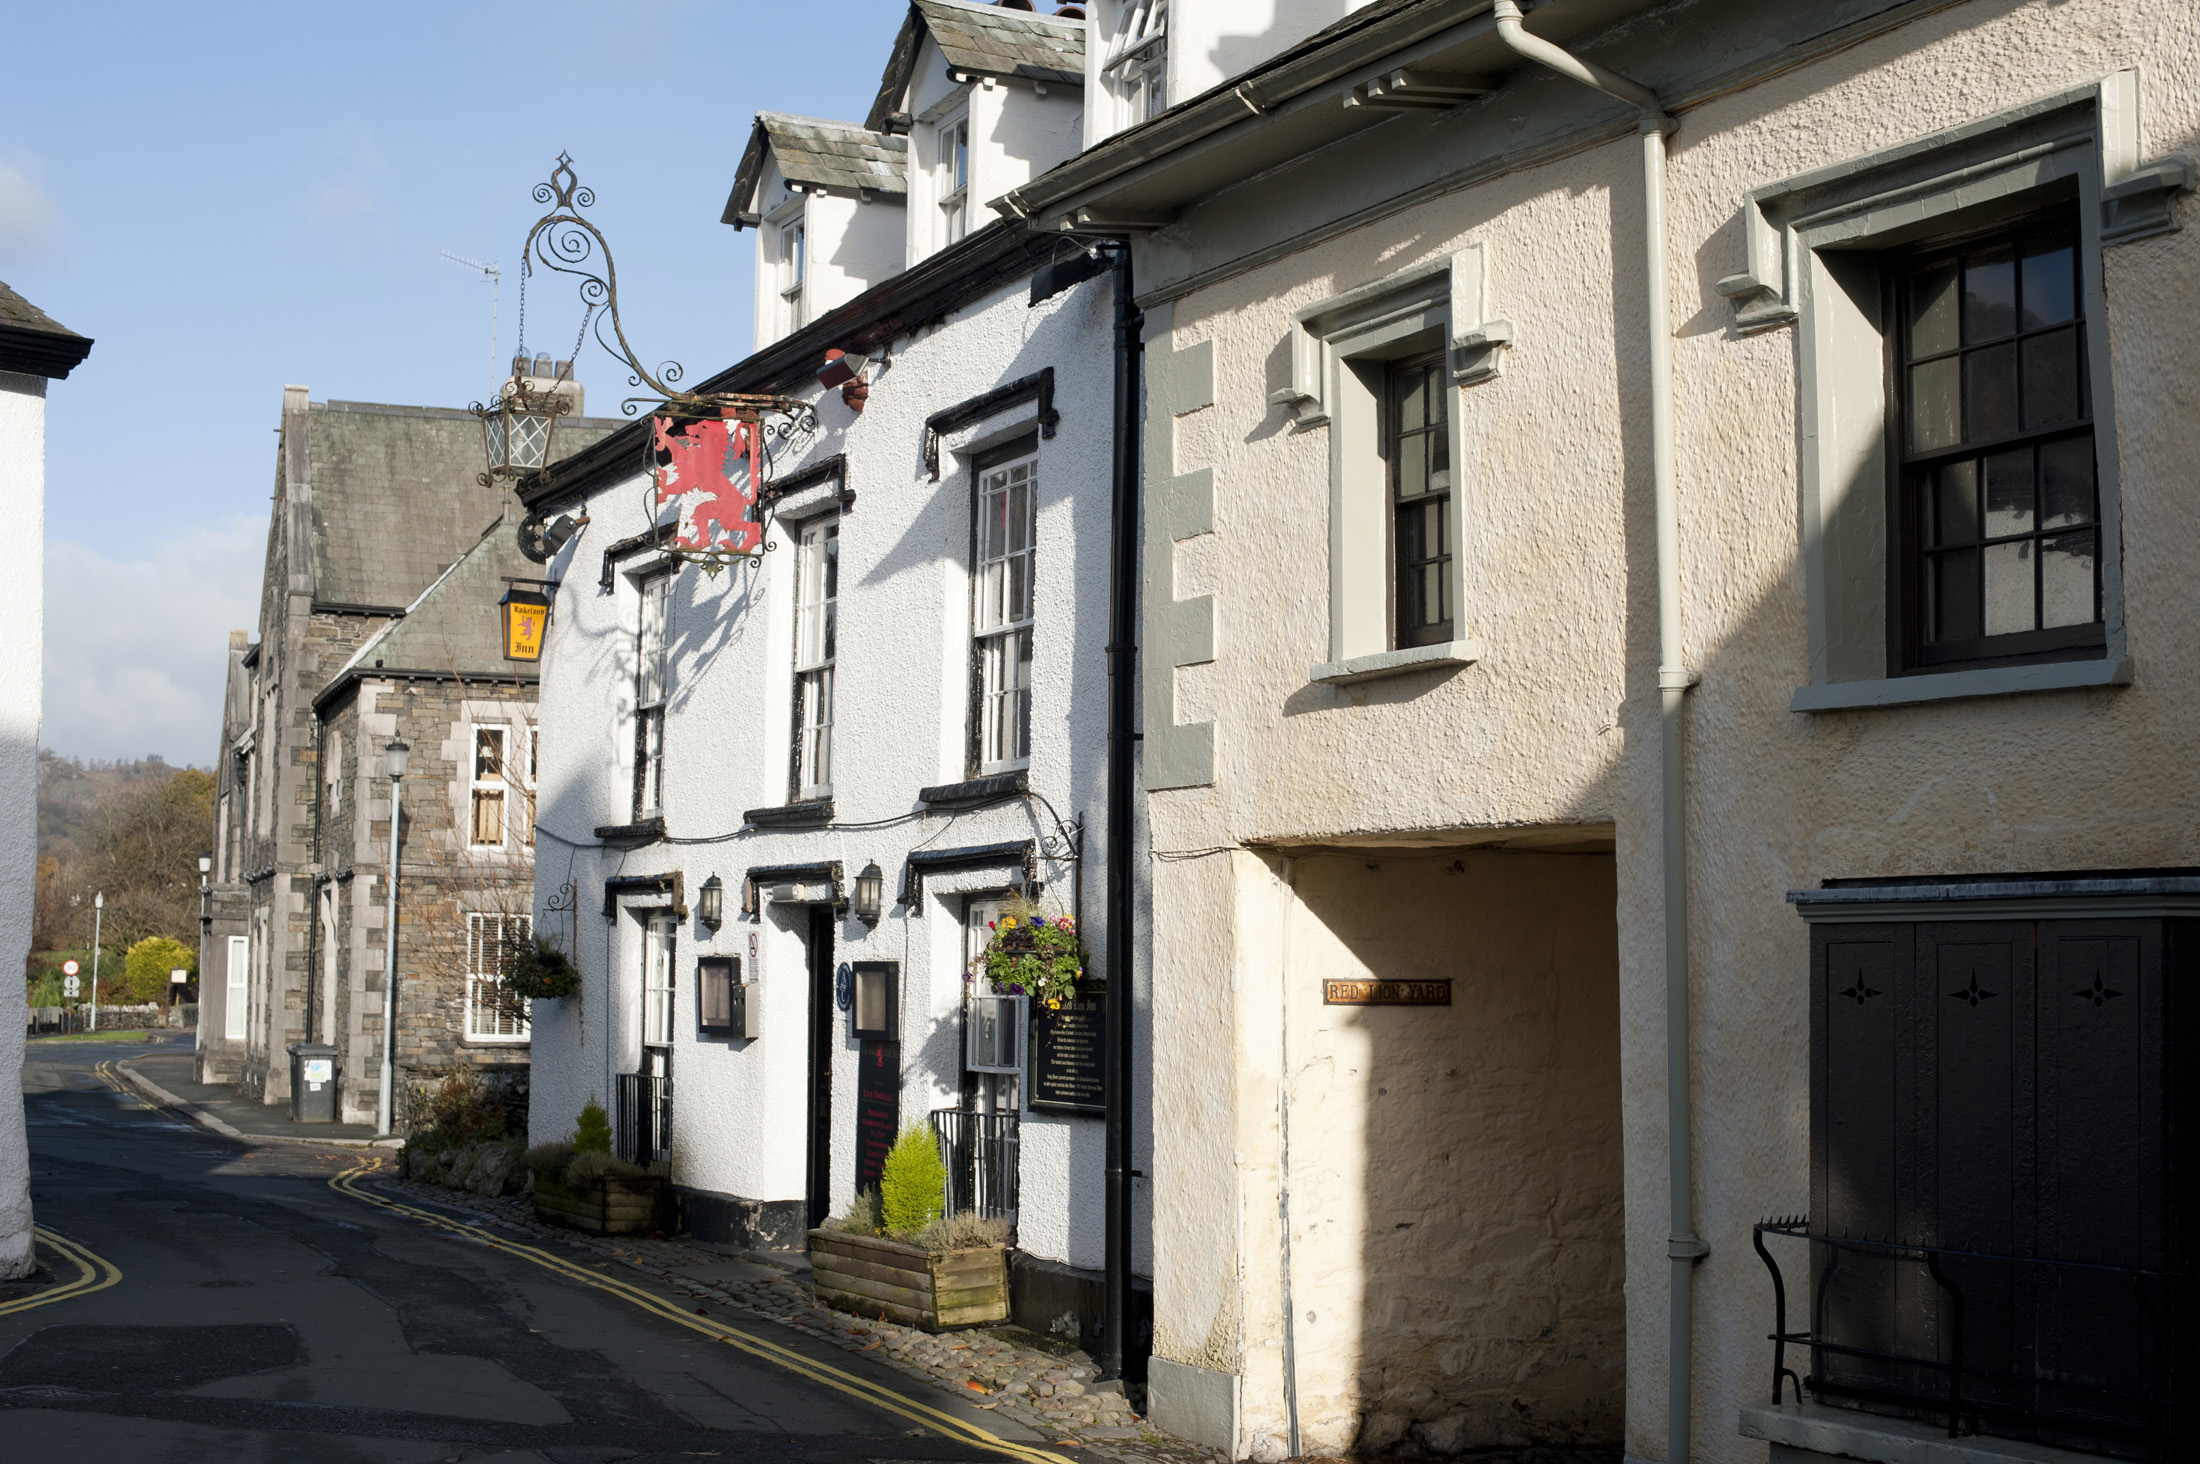 View from the street of the external facade of the Red Lion Inn in the village of Hawkshead in the Lake District in Cumbria